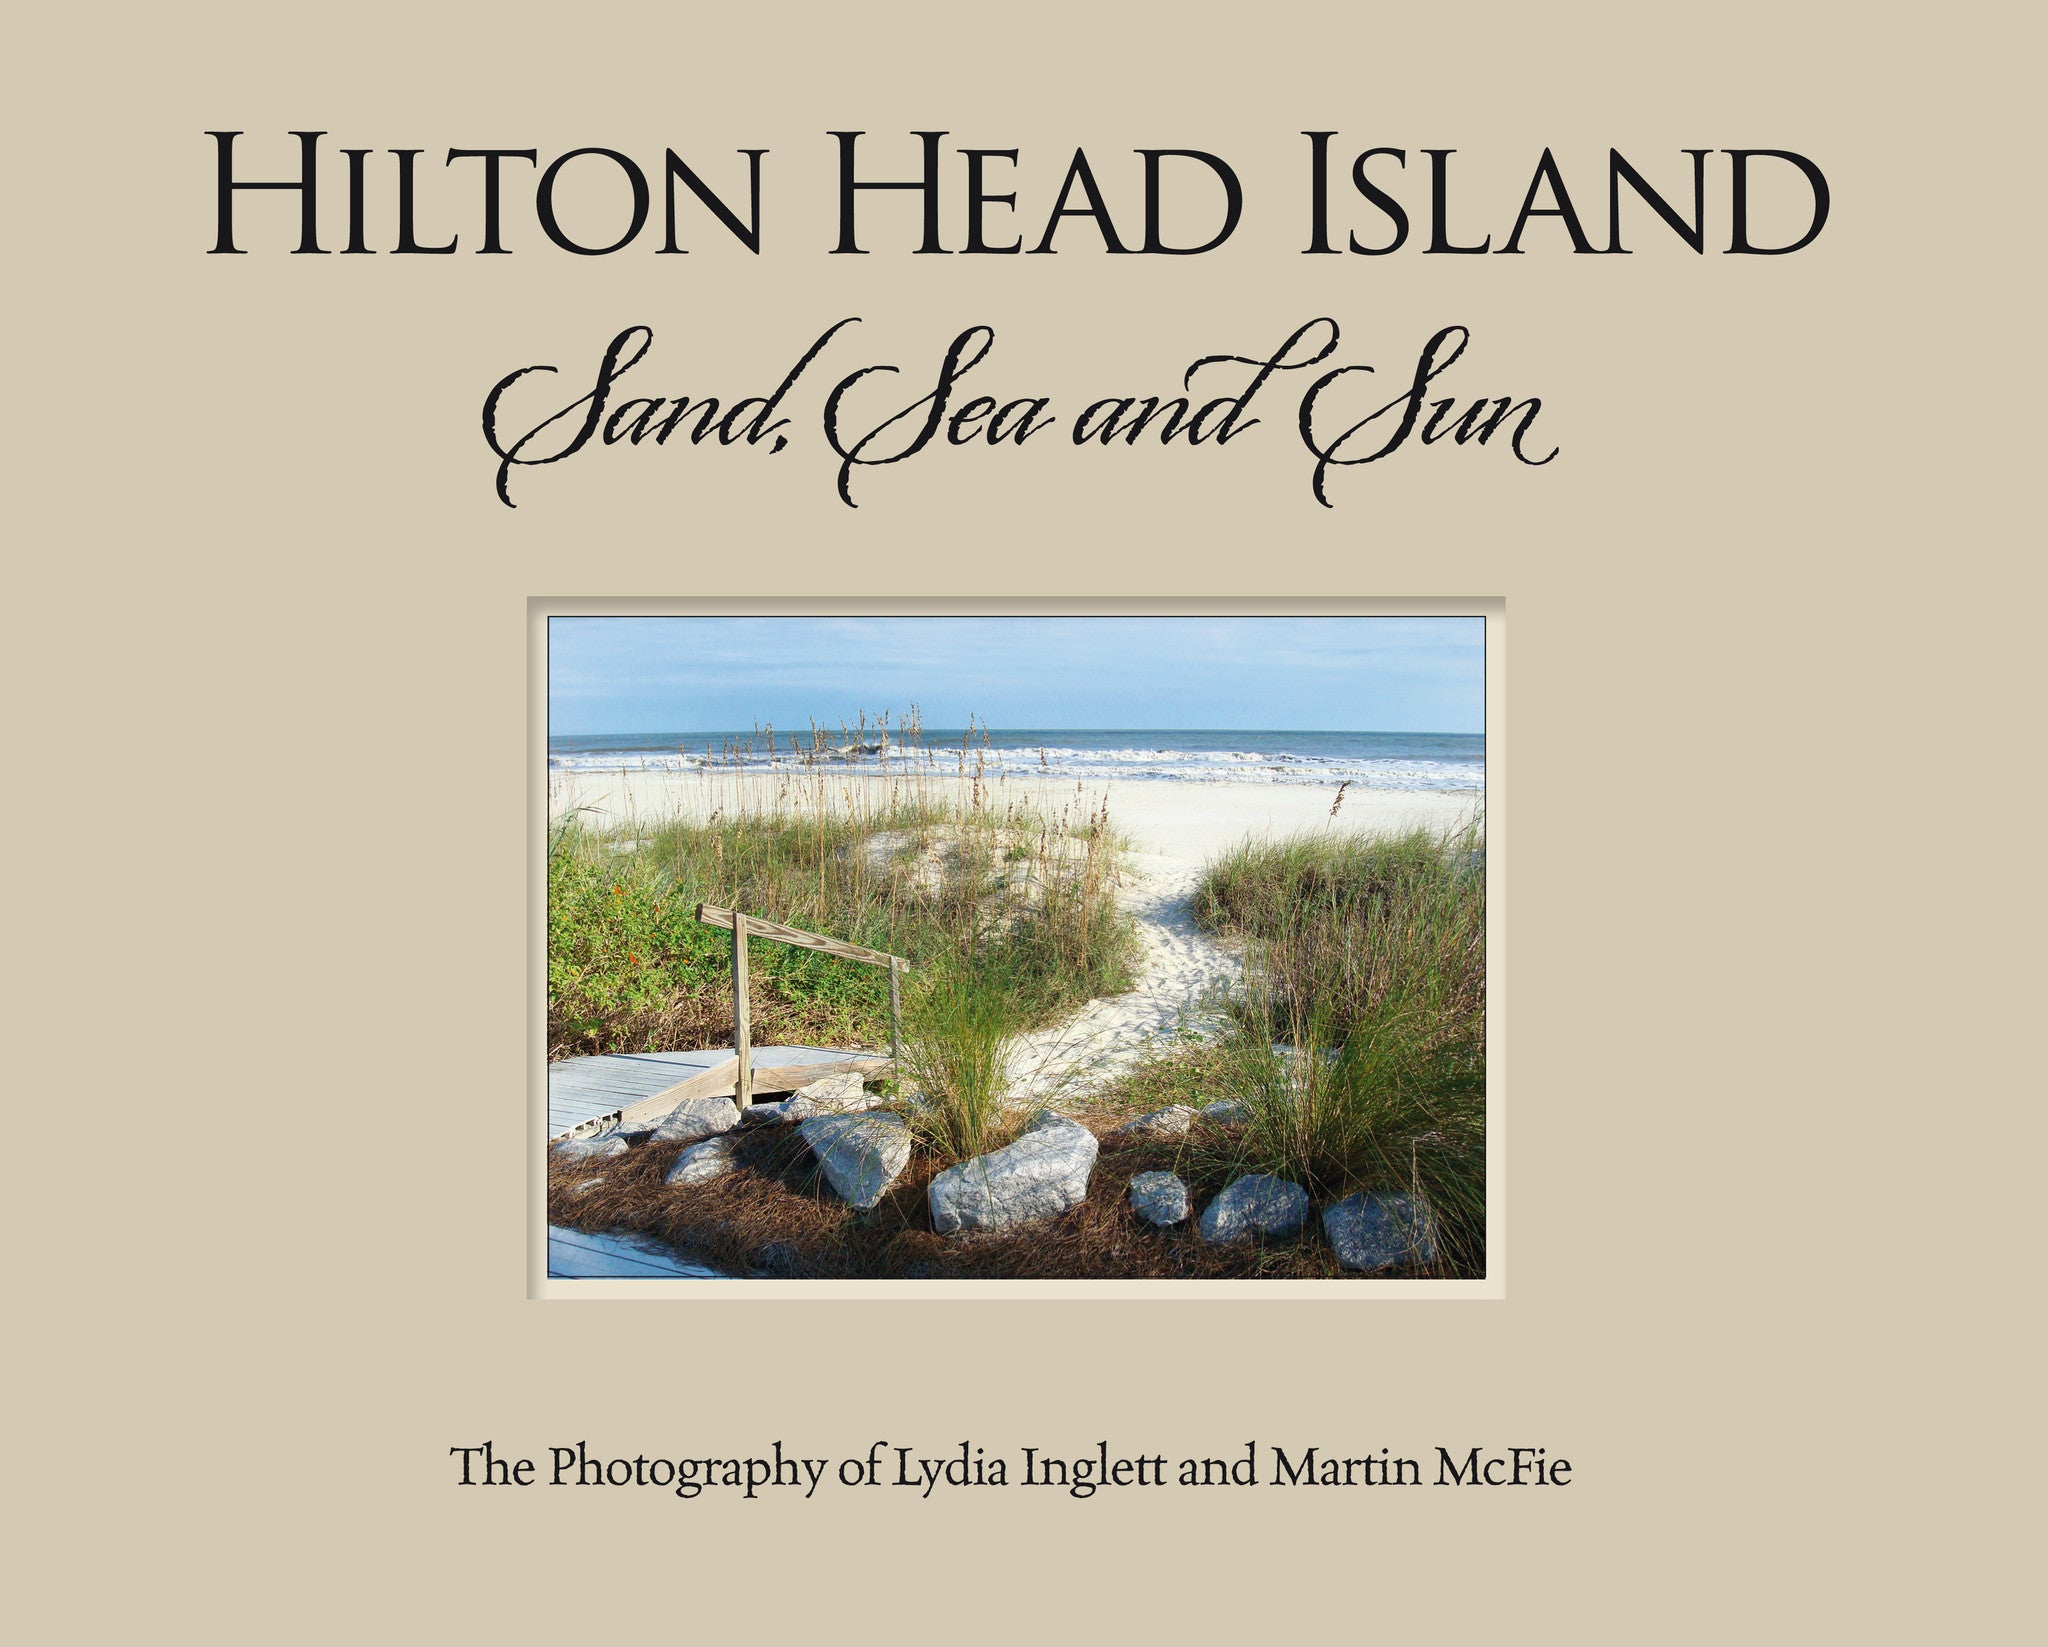 Coffee table photography book: Hilton Head Island, Sand, Sea and Sun Lydia Inglett and Starbooks